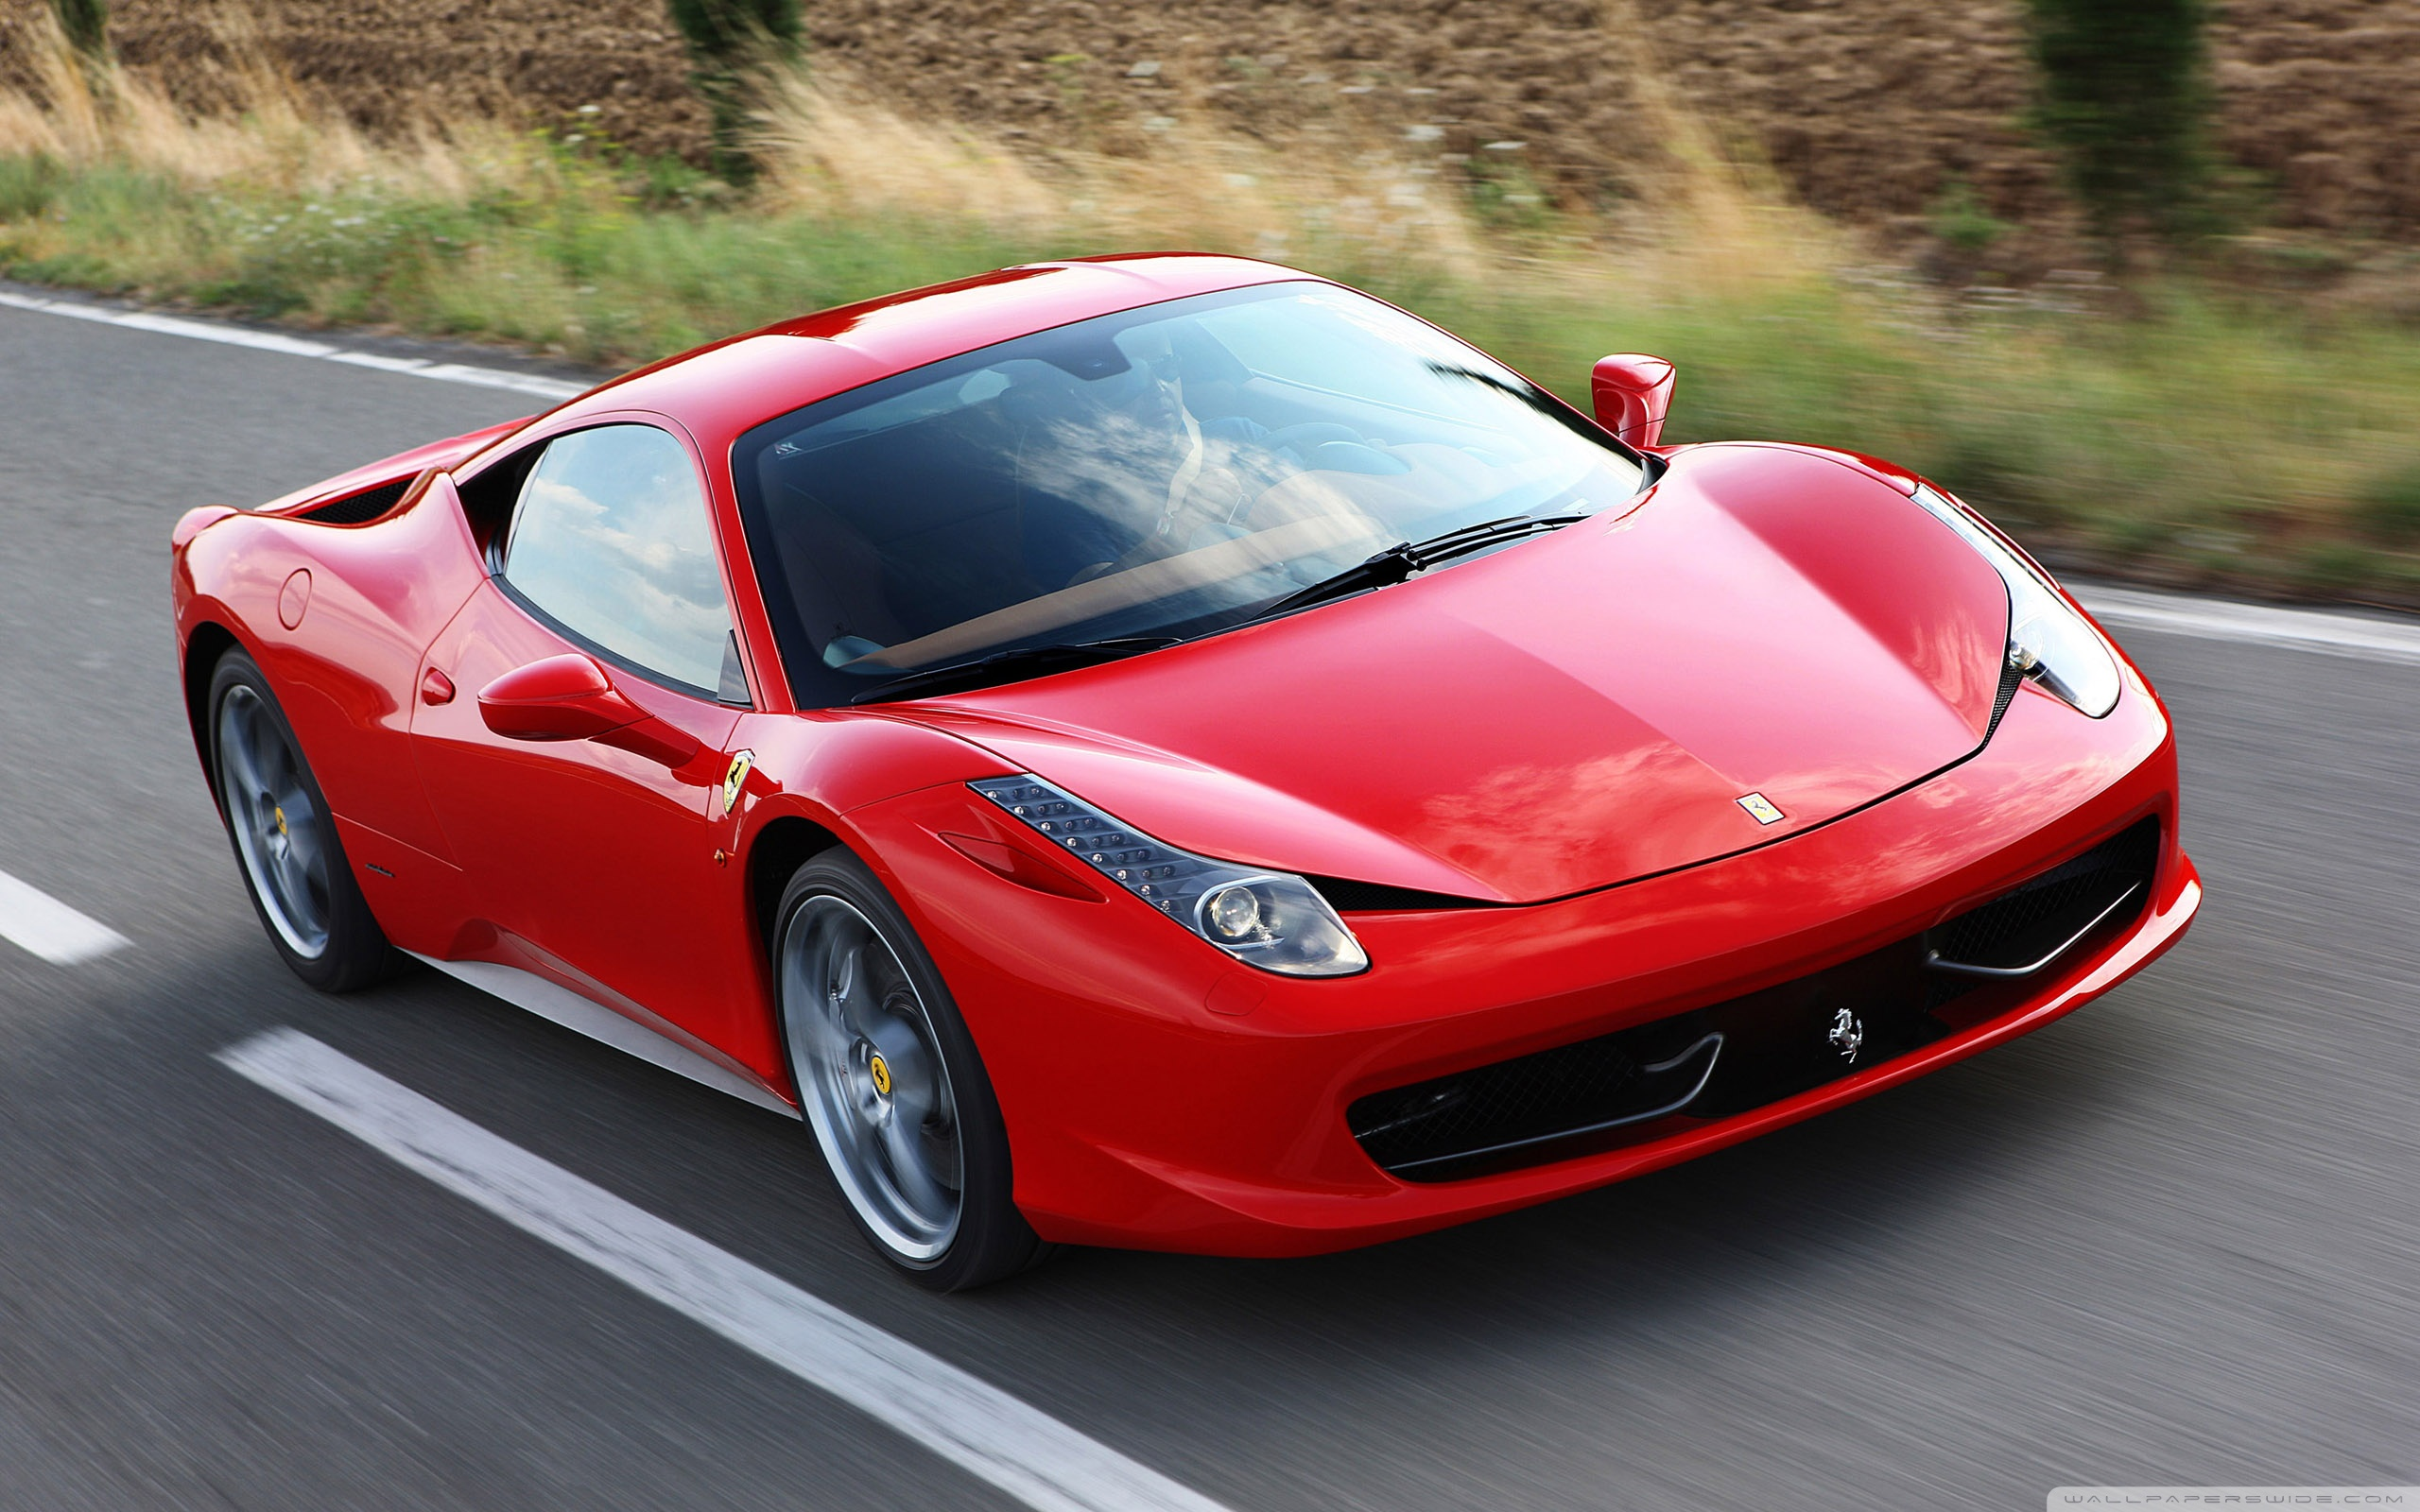 Red Ferrari 458 Italia ❤ 4K HD Desktop Wallpaper for 4K Ultra HD TV ...